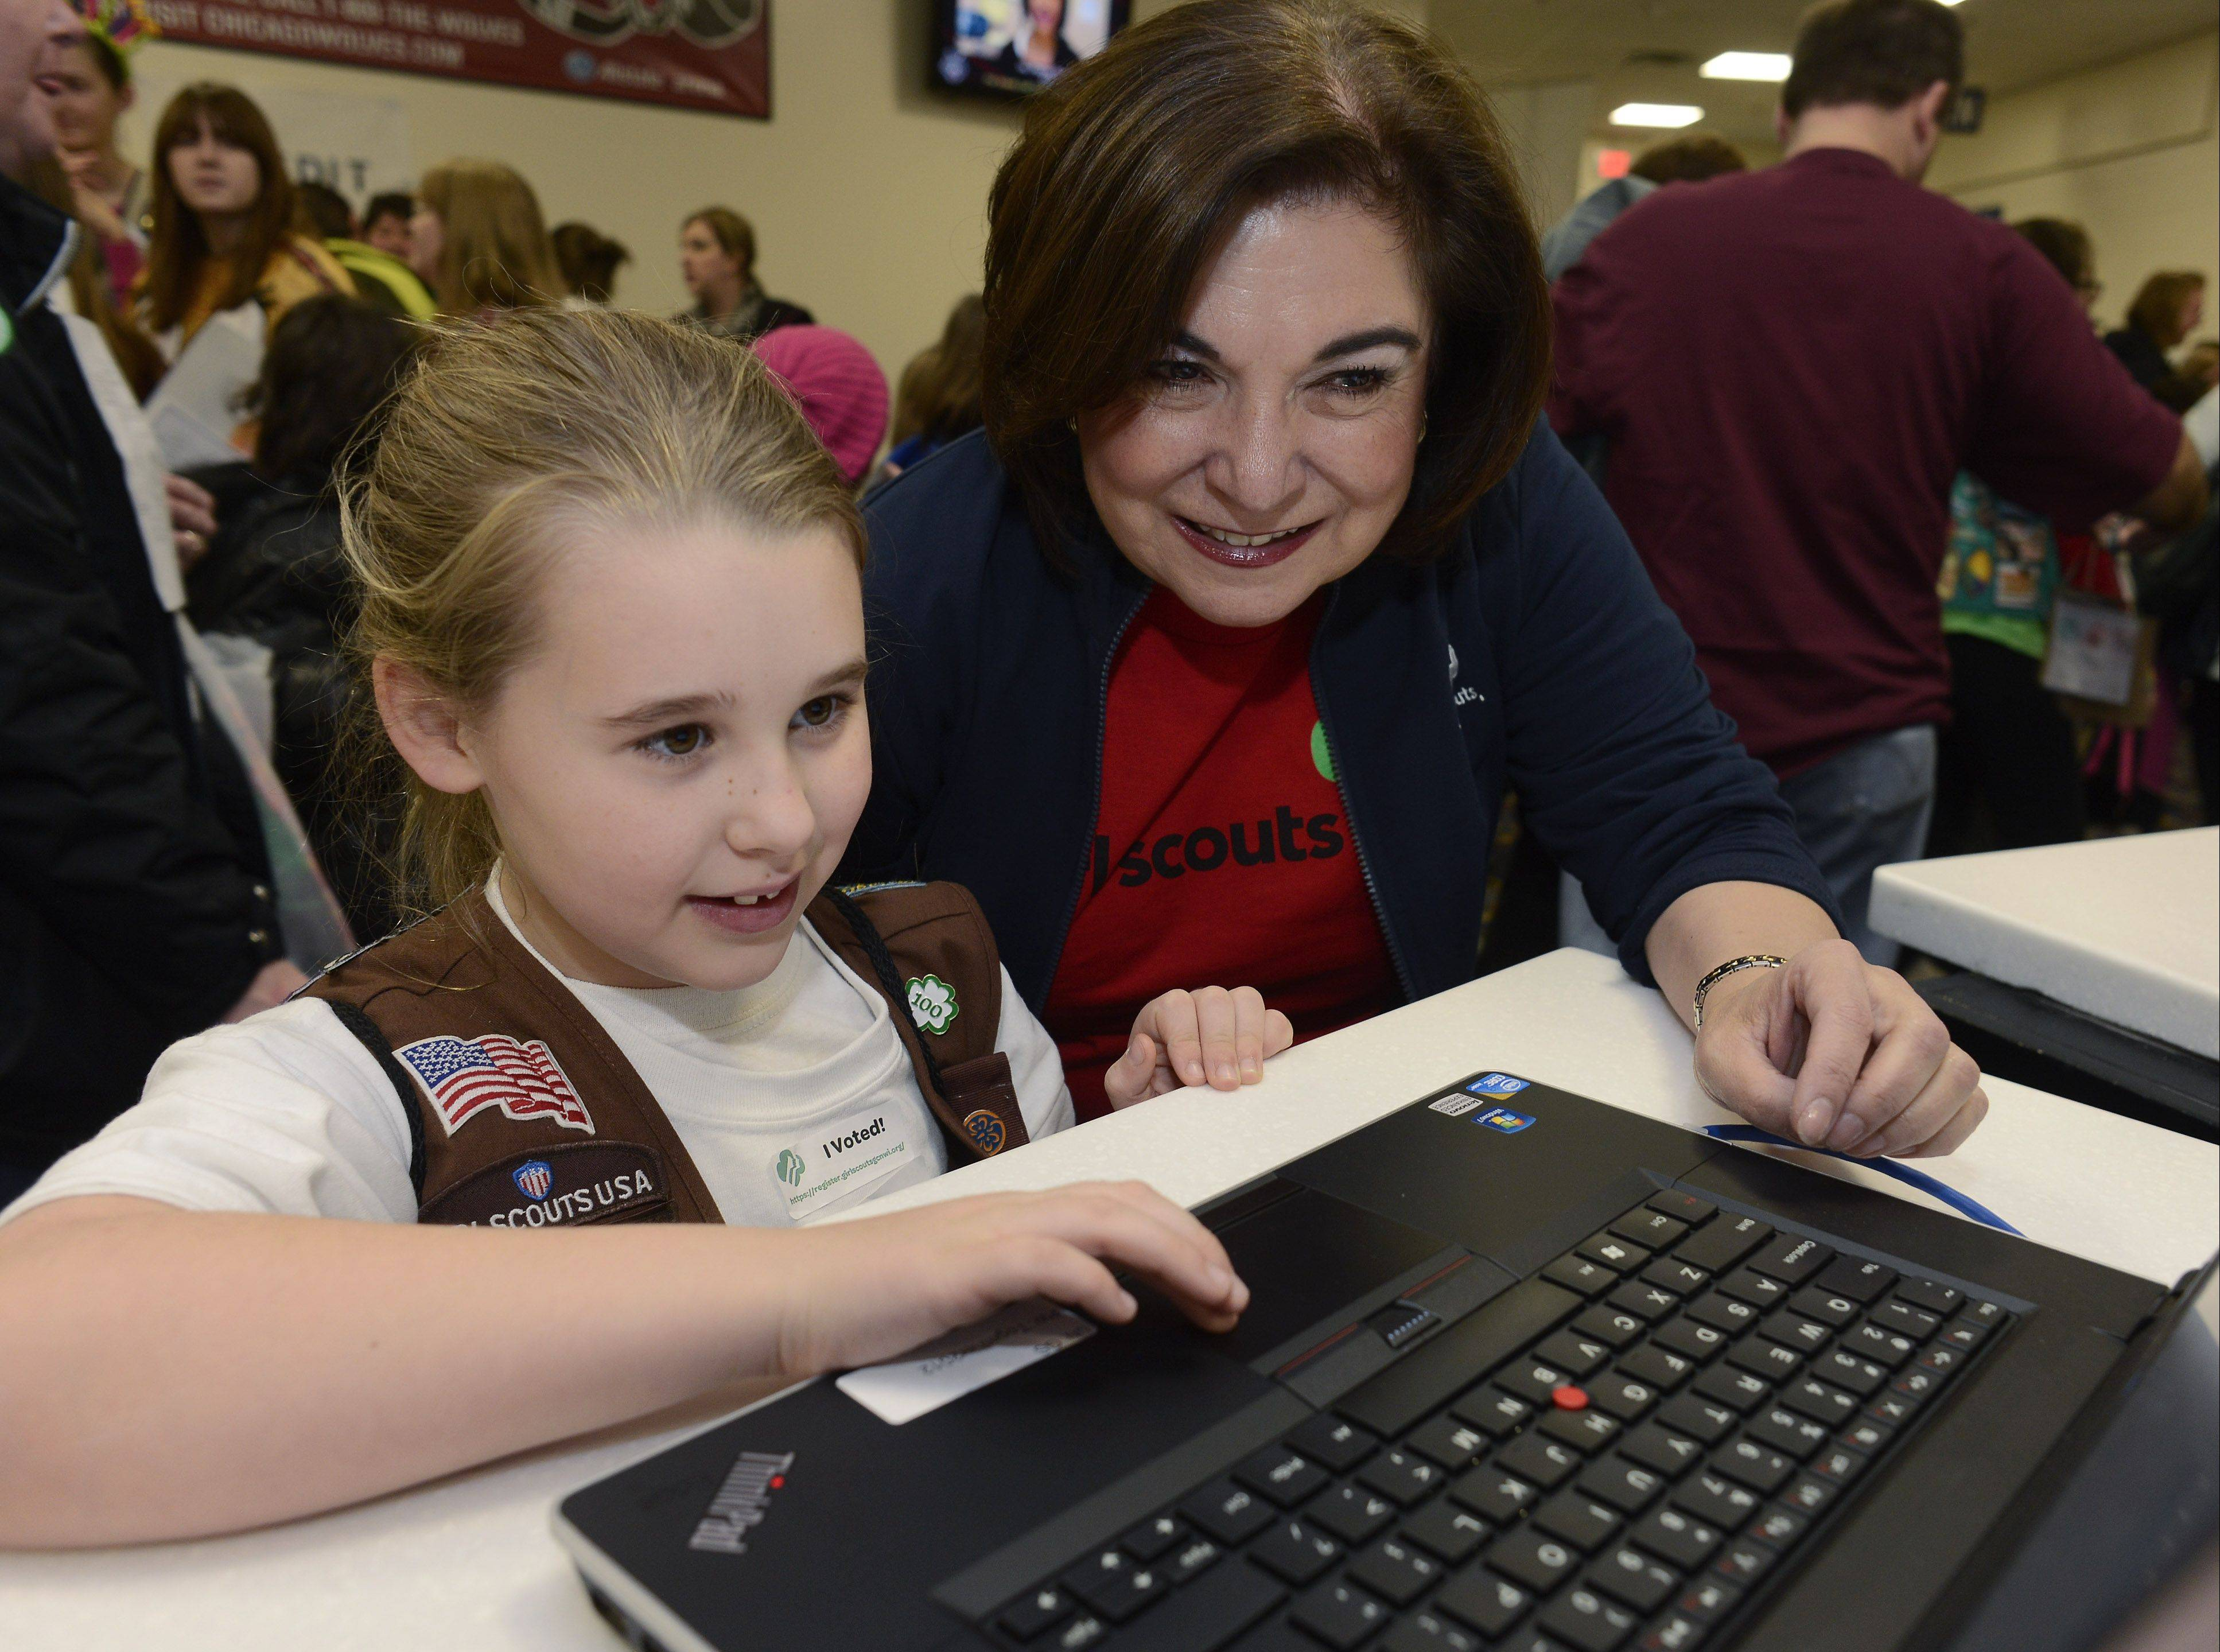 Riley Reynolds, 7, of Hoffman Estates, who is a member of Brownie Troop 41857, learns how to view sales information on the computer with the help of Maria Wynne, CEO of the Girl Scouts of Greater Chicago and Northwest Indiana, as the organization kicks off its annual Girl Scout Cookie Program Saturday at the Allstate Arena in Rosemont.